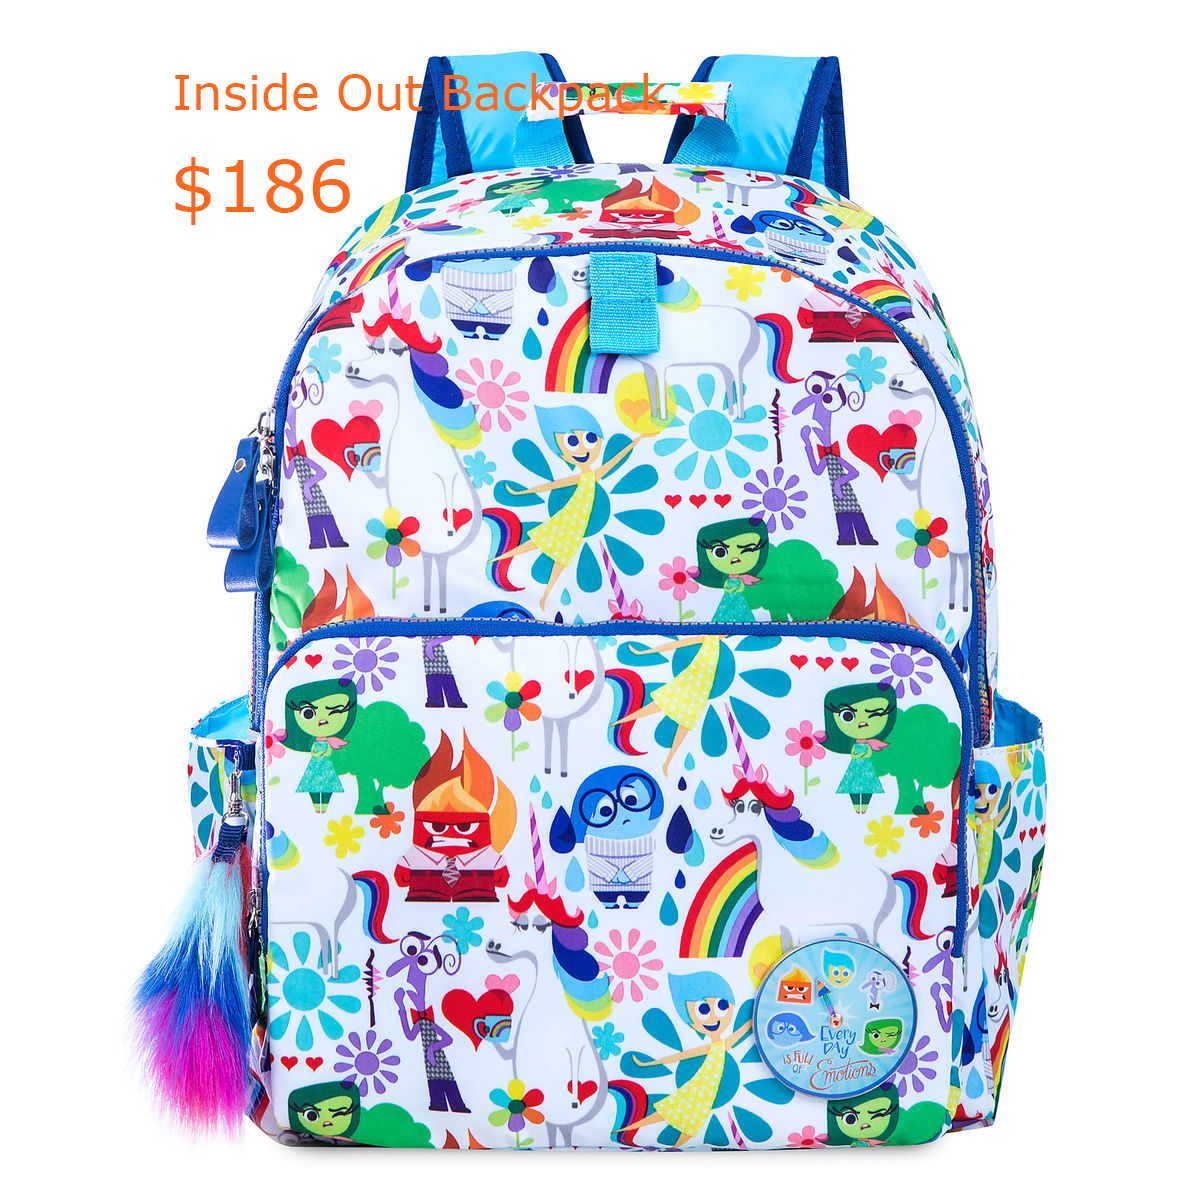 186Inside Out Backpack